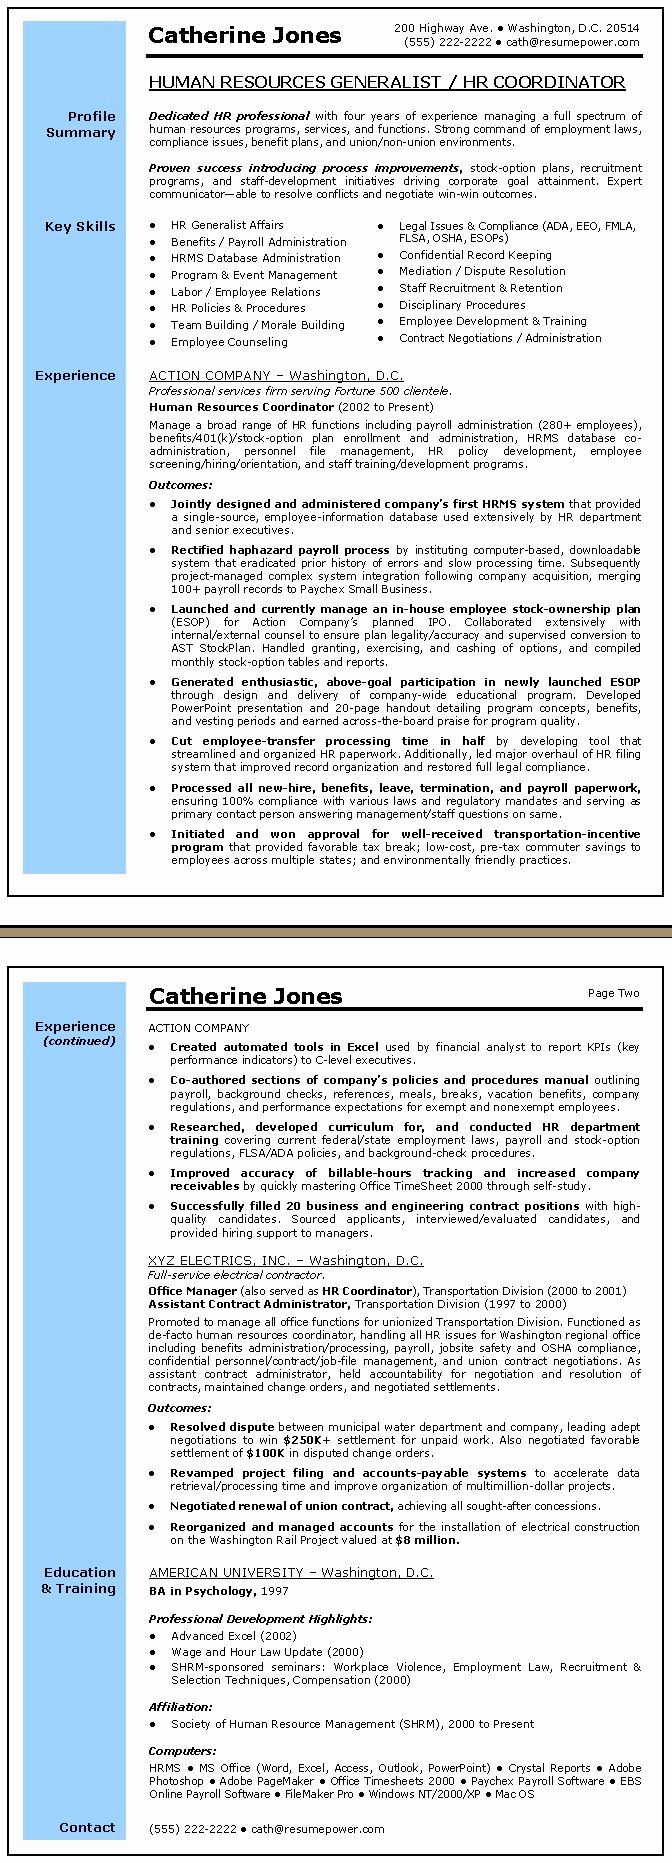 9 Human Resource Resume Objective Free Templates